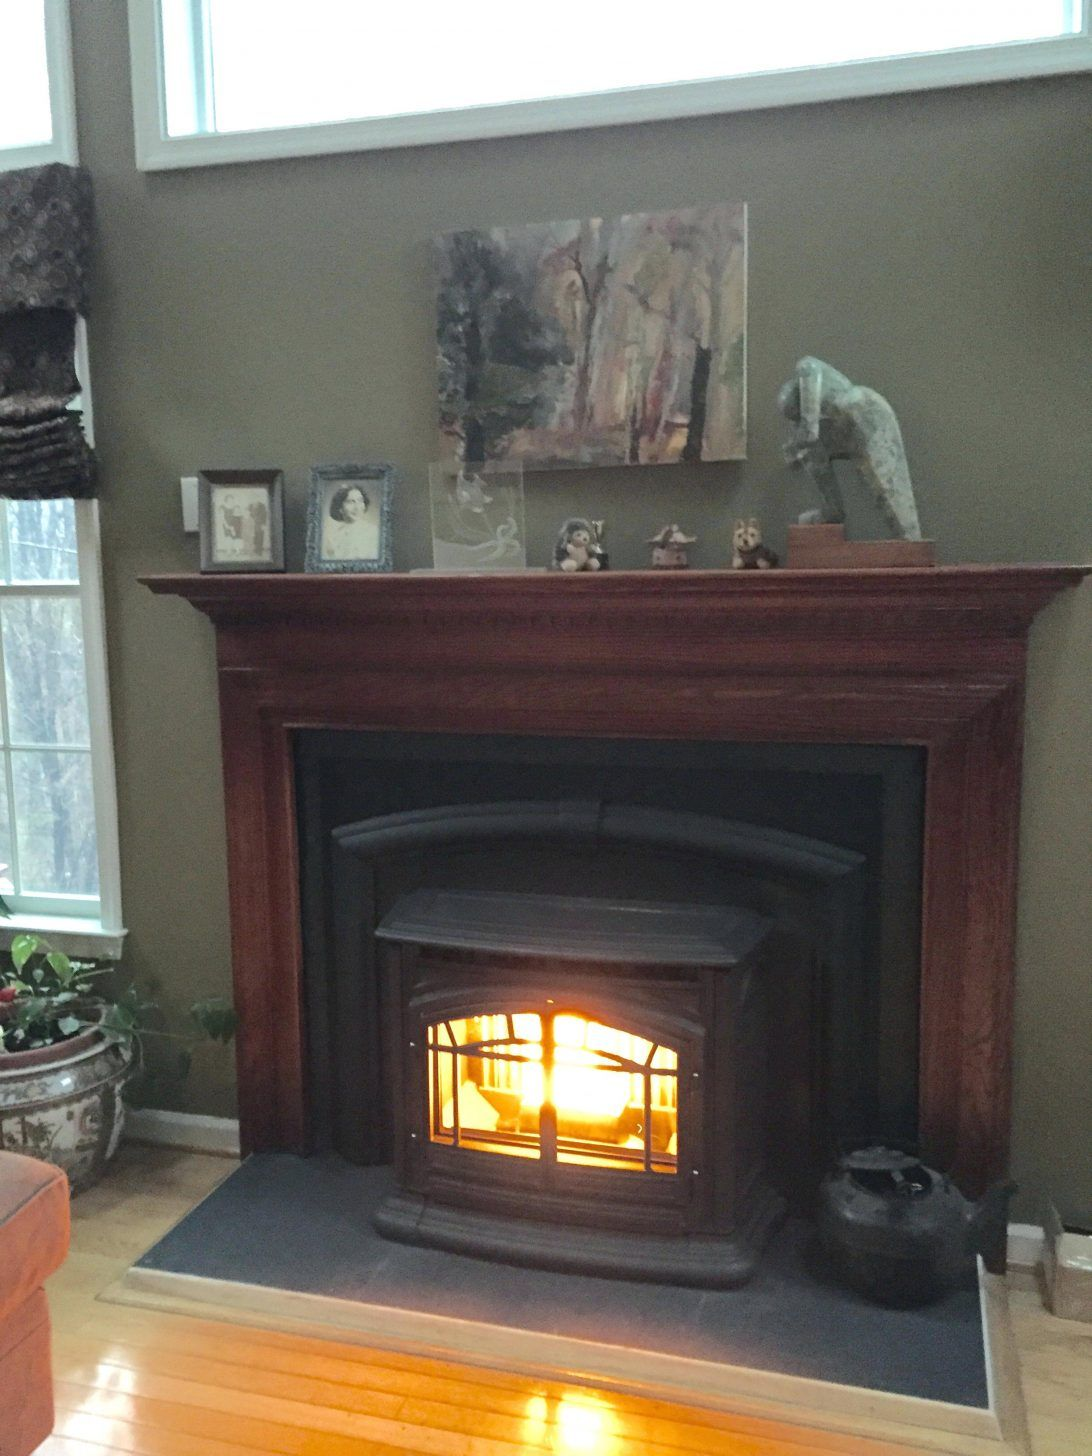 Adding A Fireplace Adding A Fireplace To A House Artificial Fireplace Best Fireplace Inser Build A Fireplace